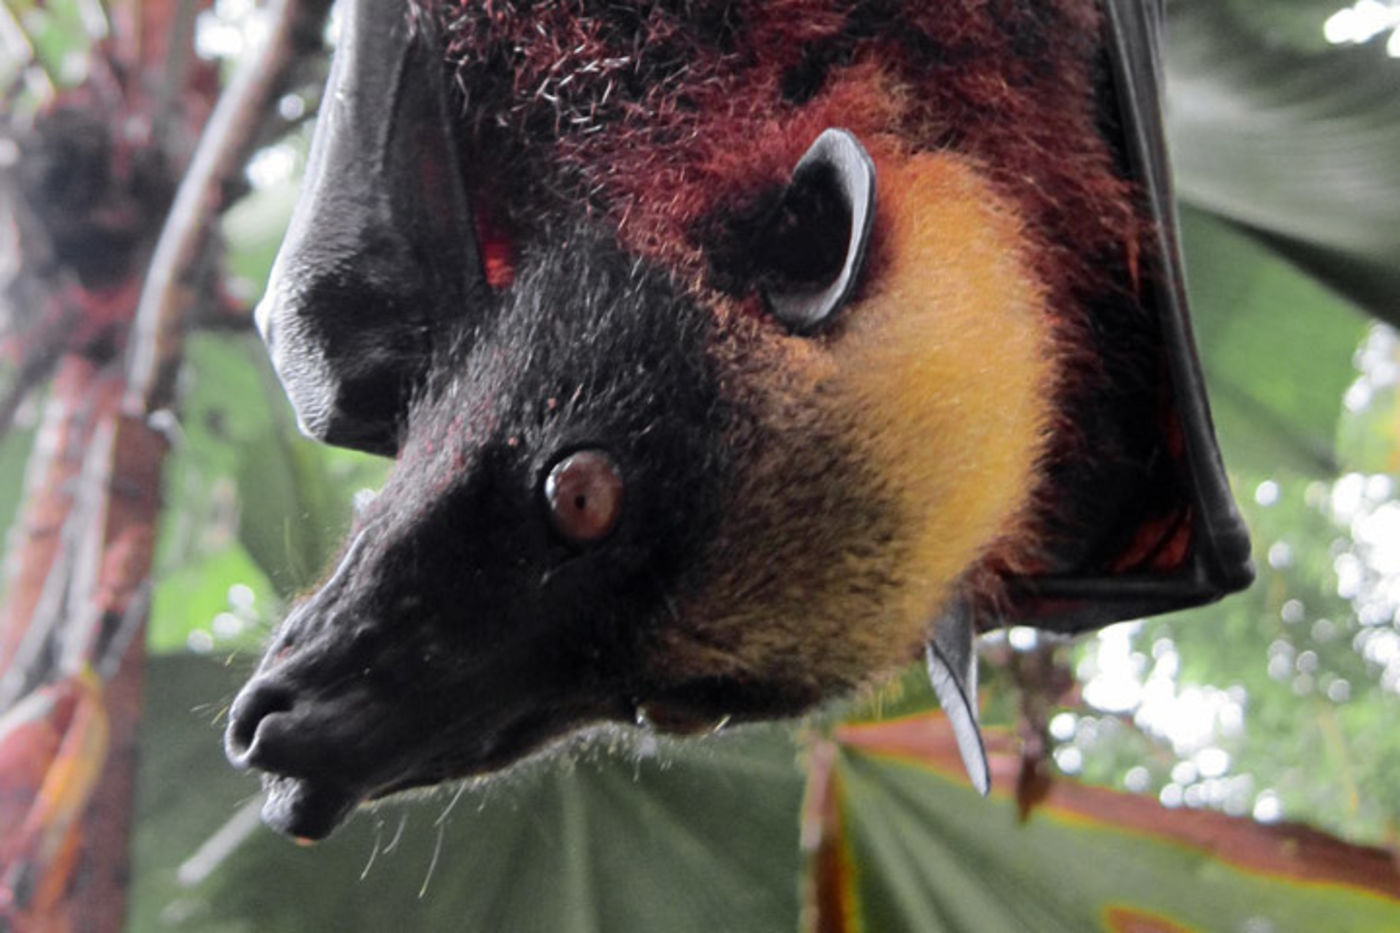 A bat with a black snout, yellow head, and reddish body hangs upside down. Green leaves are seen in the background.